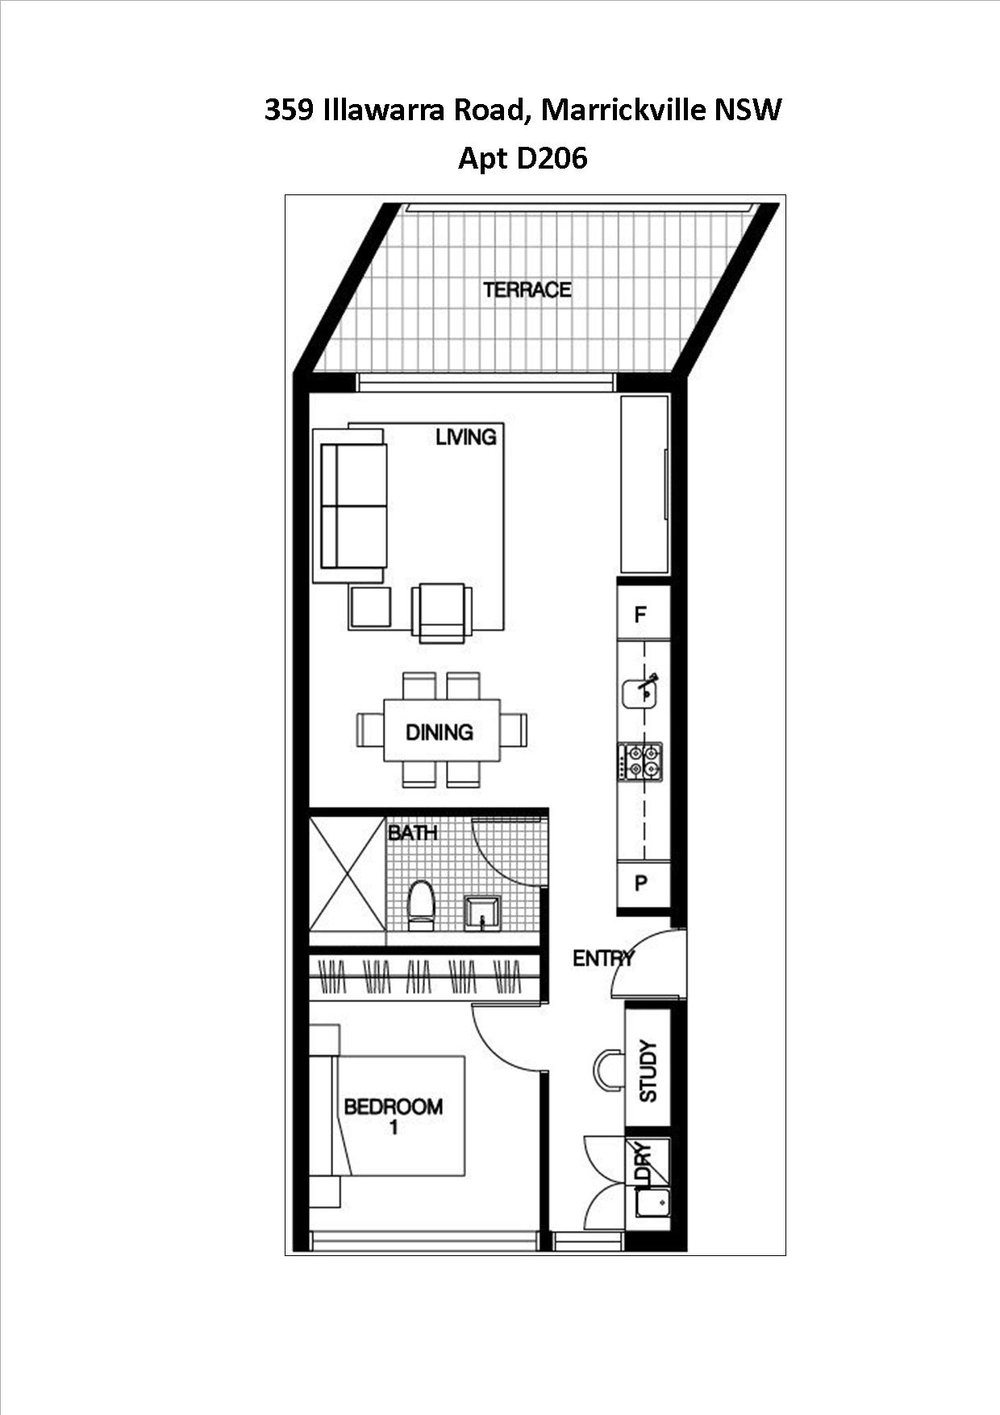 Floor Plan Apt D206 1 x 1 plus study and parking.jpg